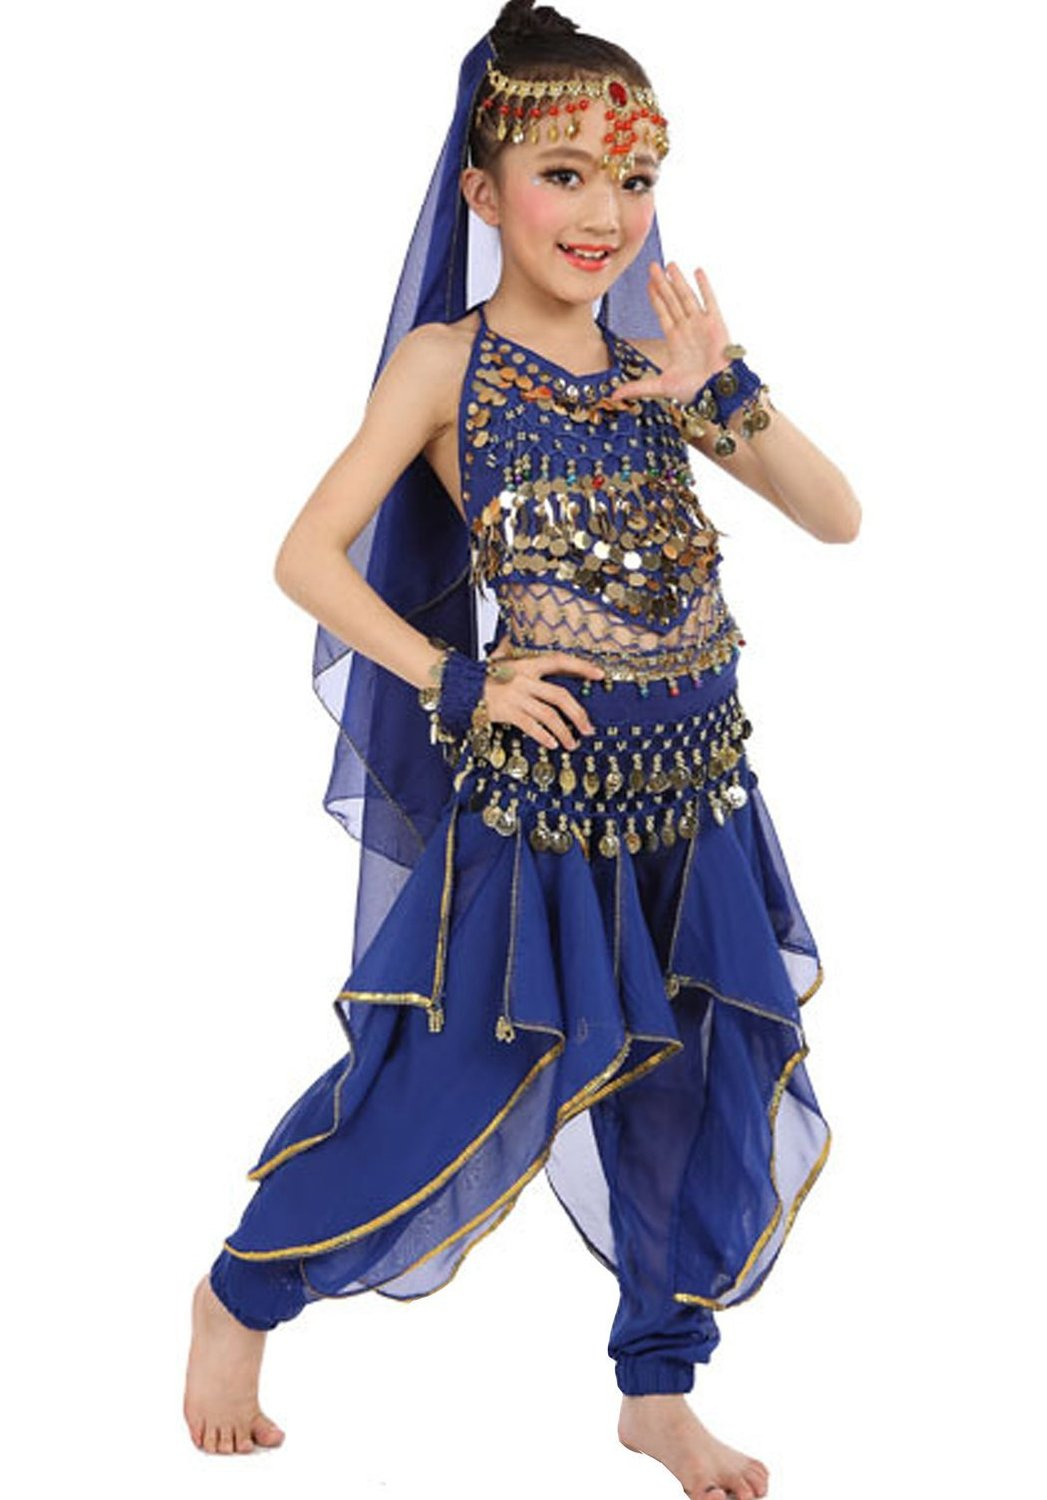 2a7ebf95c9172 Get Quotations · Astage Girls Halloween Costume Oriental Belly Dance  Costume All Accessories